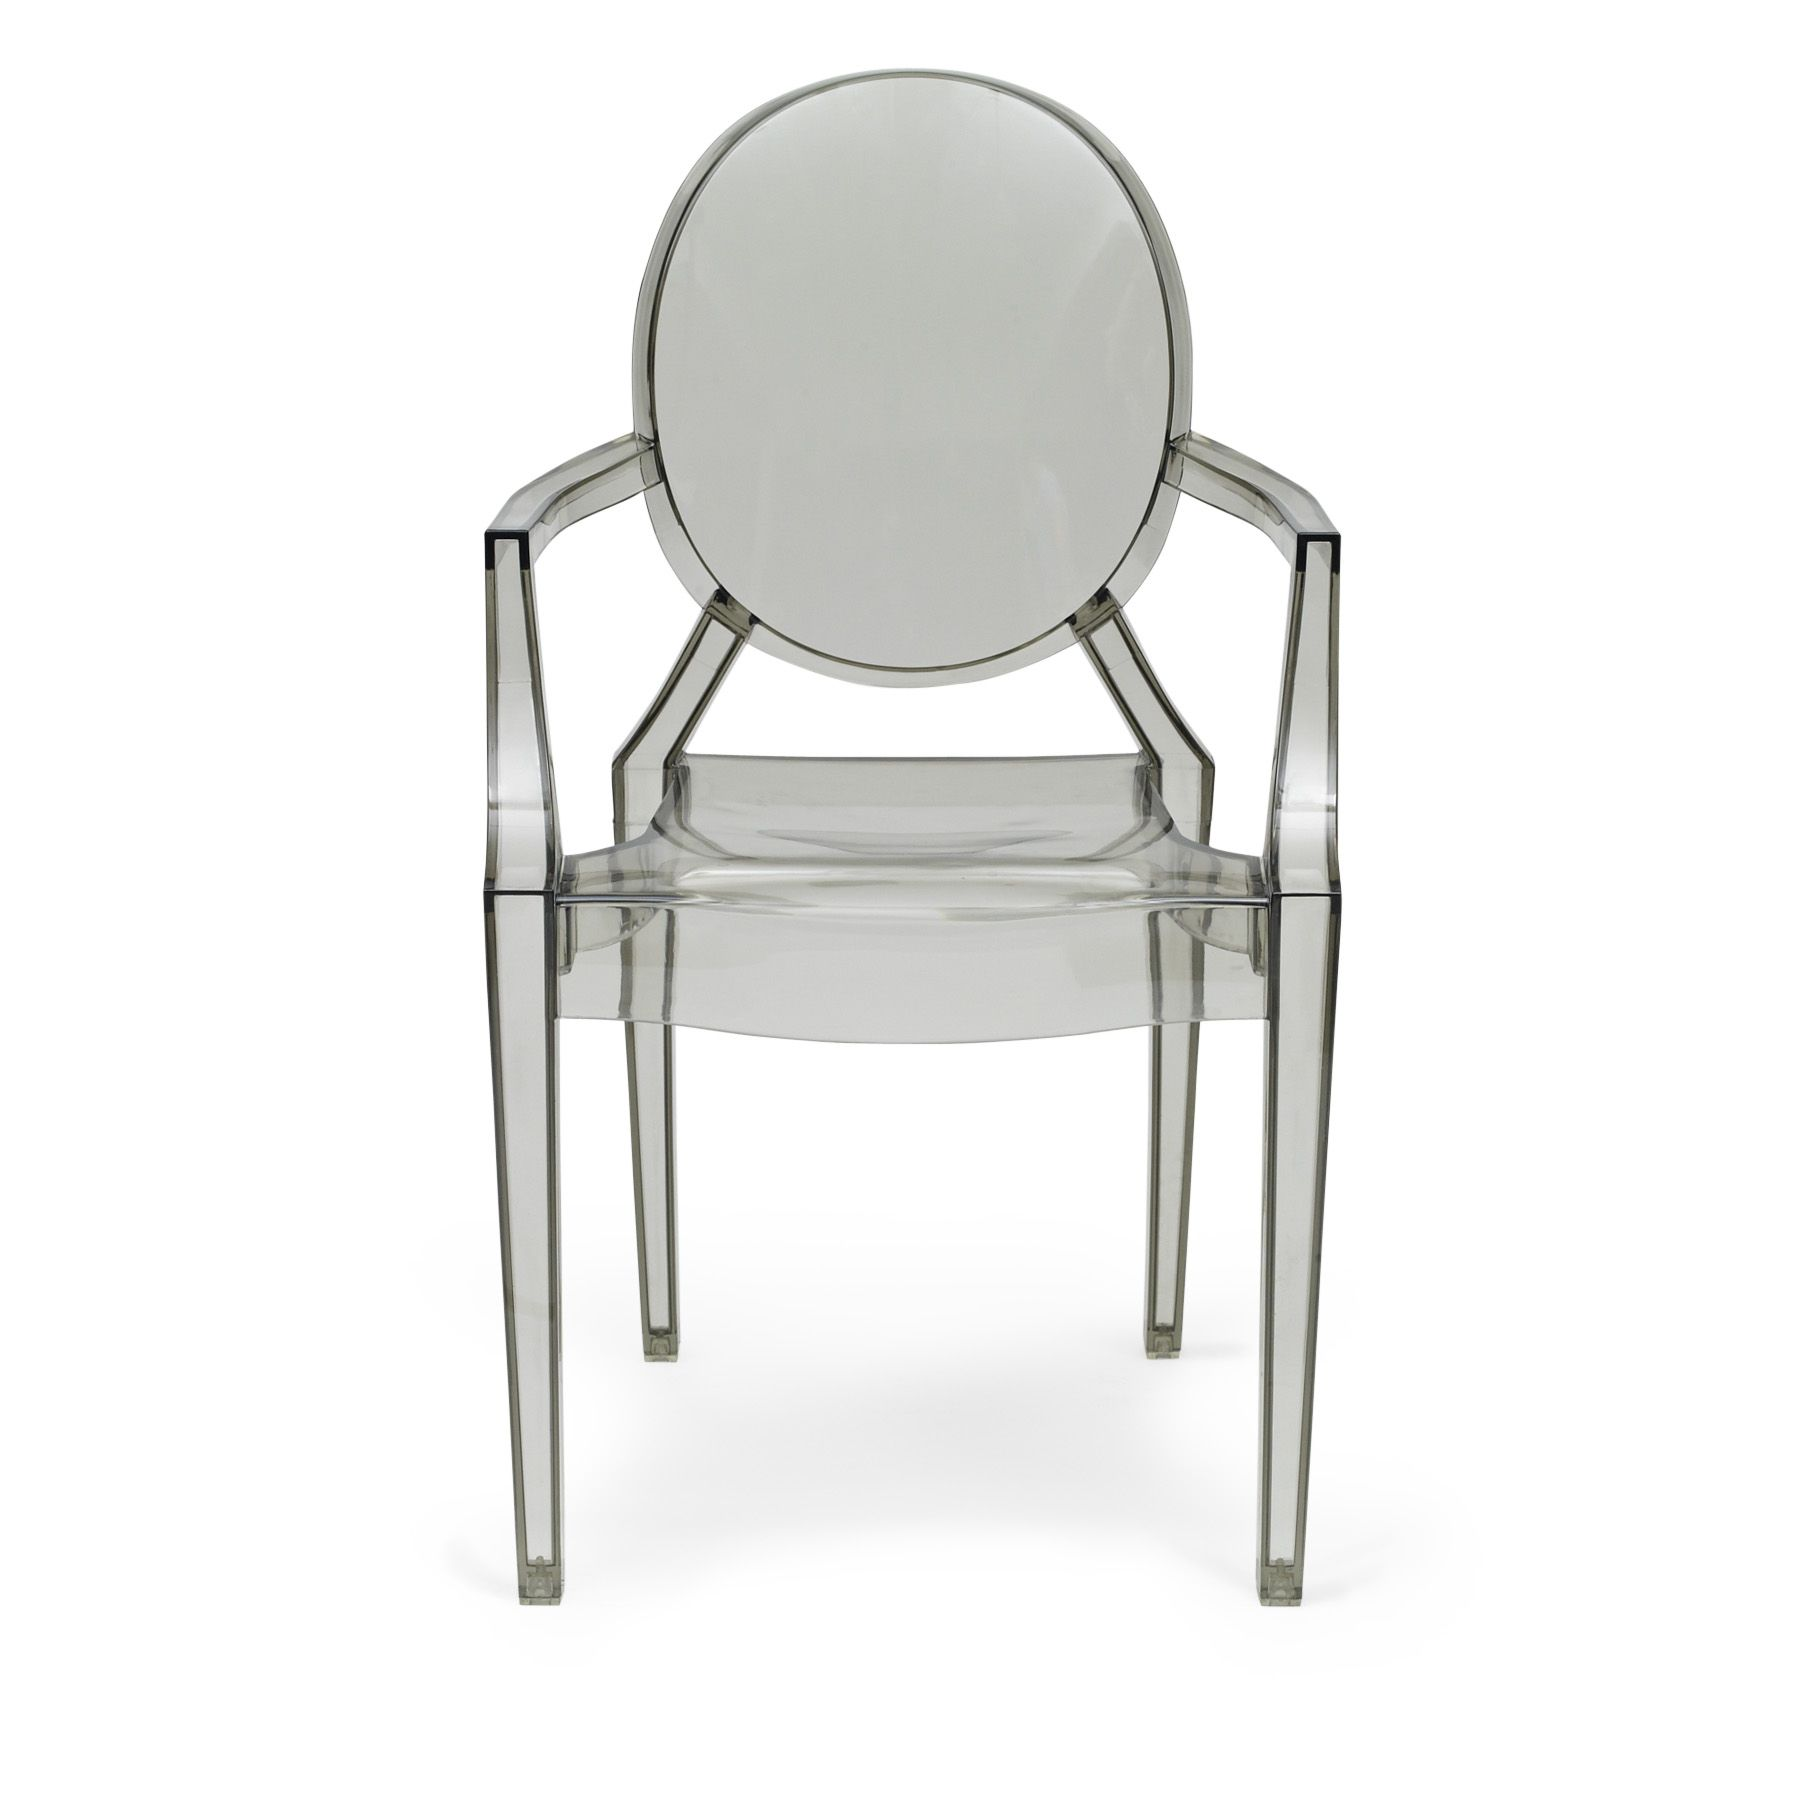 reproduction in design of philippe starck louis ghost armchair